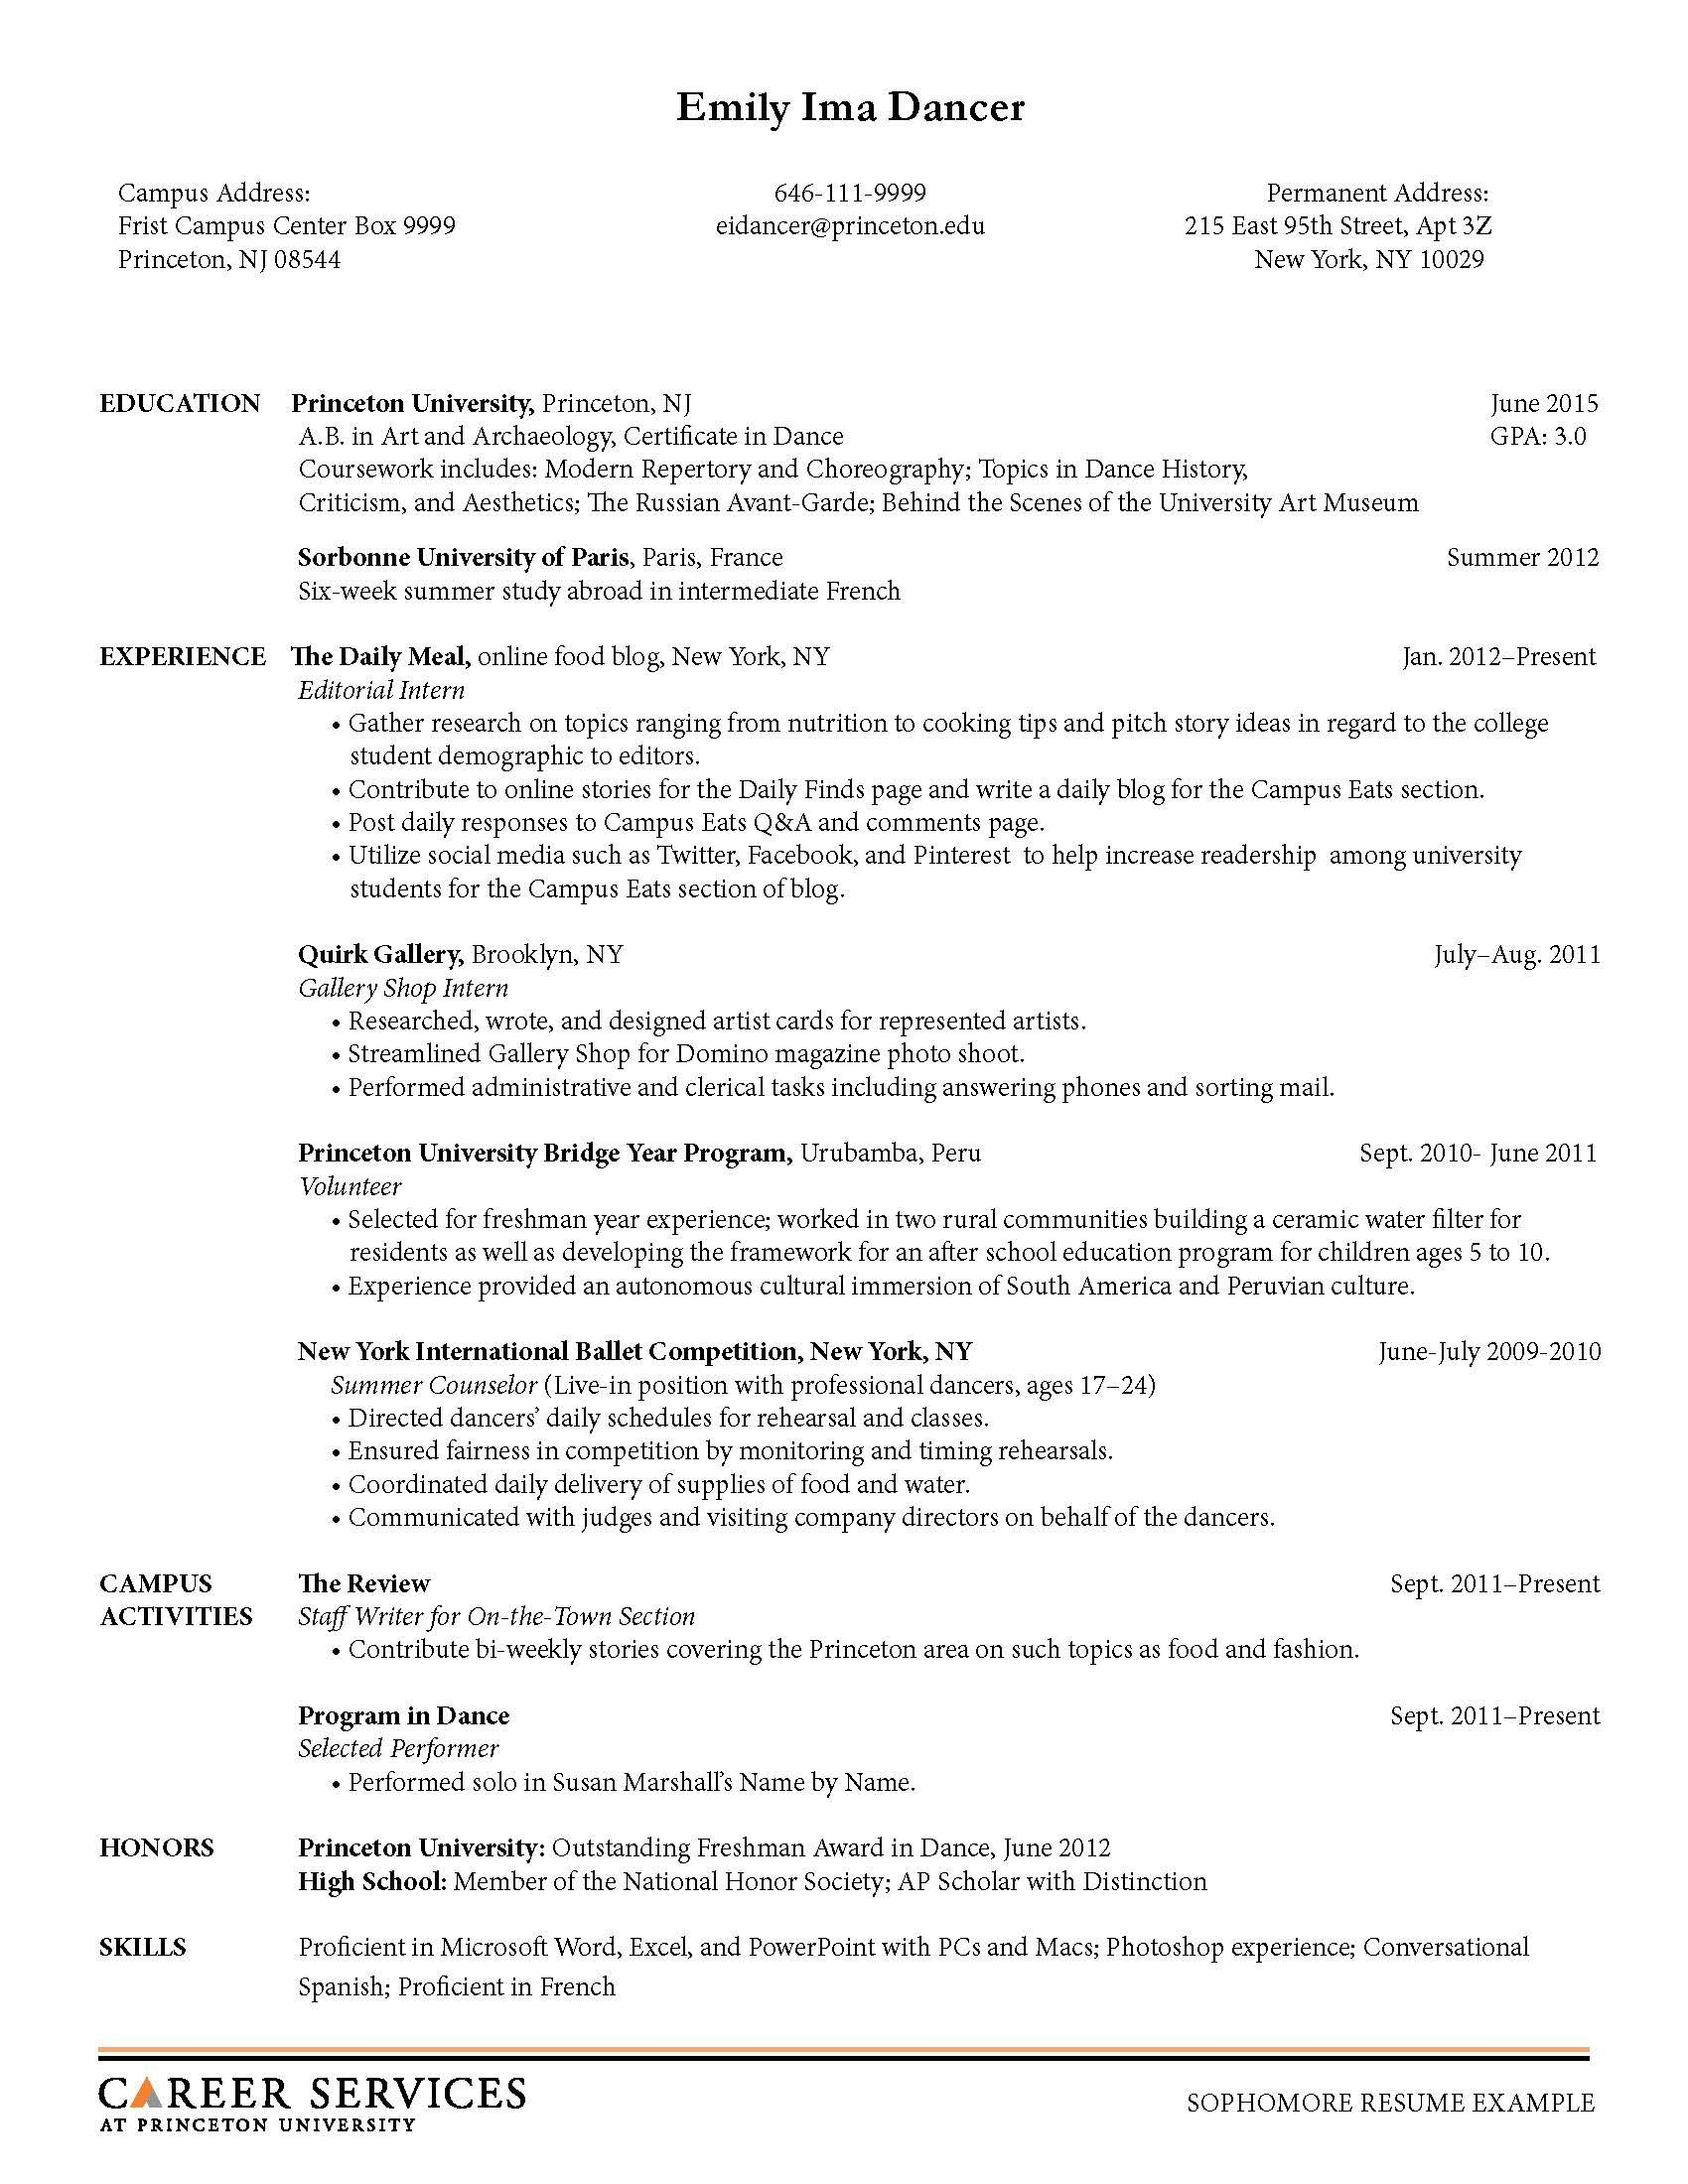 Opposenewapstandardsus  Splendid Sample Resume Resume And Career On Pinterest With Great How To Beef Up A Resume Besides My Personal Resume Furthermore First Year Elementary Teacher Resume With Delightful Dental Resumes Also Make Me A Resume Free In Addition Resume For Recommendation Letter And American Career College Optimal Resume As Well As Hr Executive Resume Additionally Cosmetologist Resume Examples From Pinterestcom With Opposenewapstandardsus  Great Sample Resume Resume And Career On Pinterest With Delightful How To Beef Up A Resume Besides My Personal Resume Furthermore First Year Elementary Teacher Resume And Splendid Dental Resumes Also Make Me A Resume Free In Addition Resume For Recommendation Letter From Pinterestcom